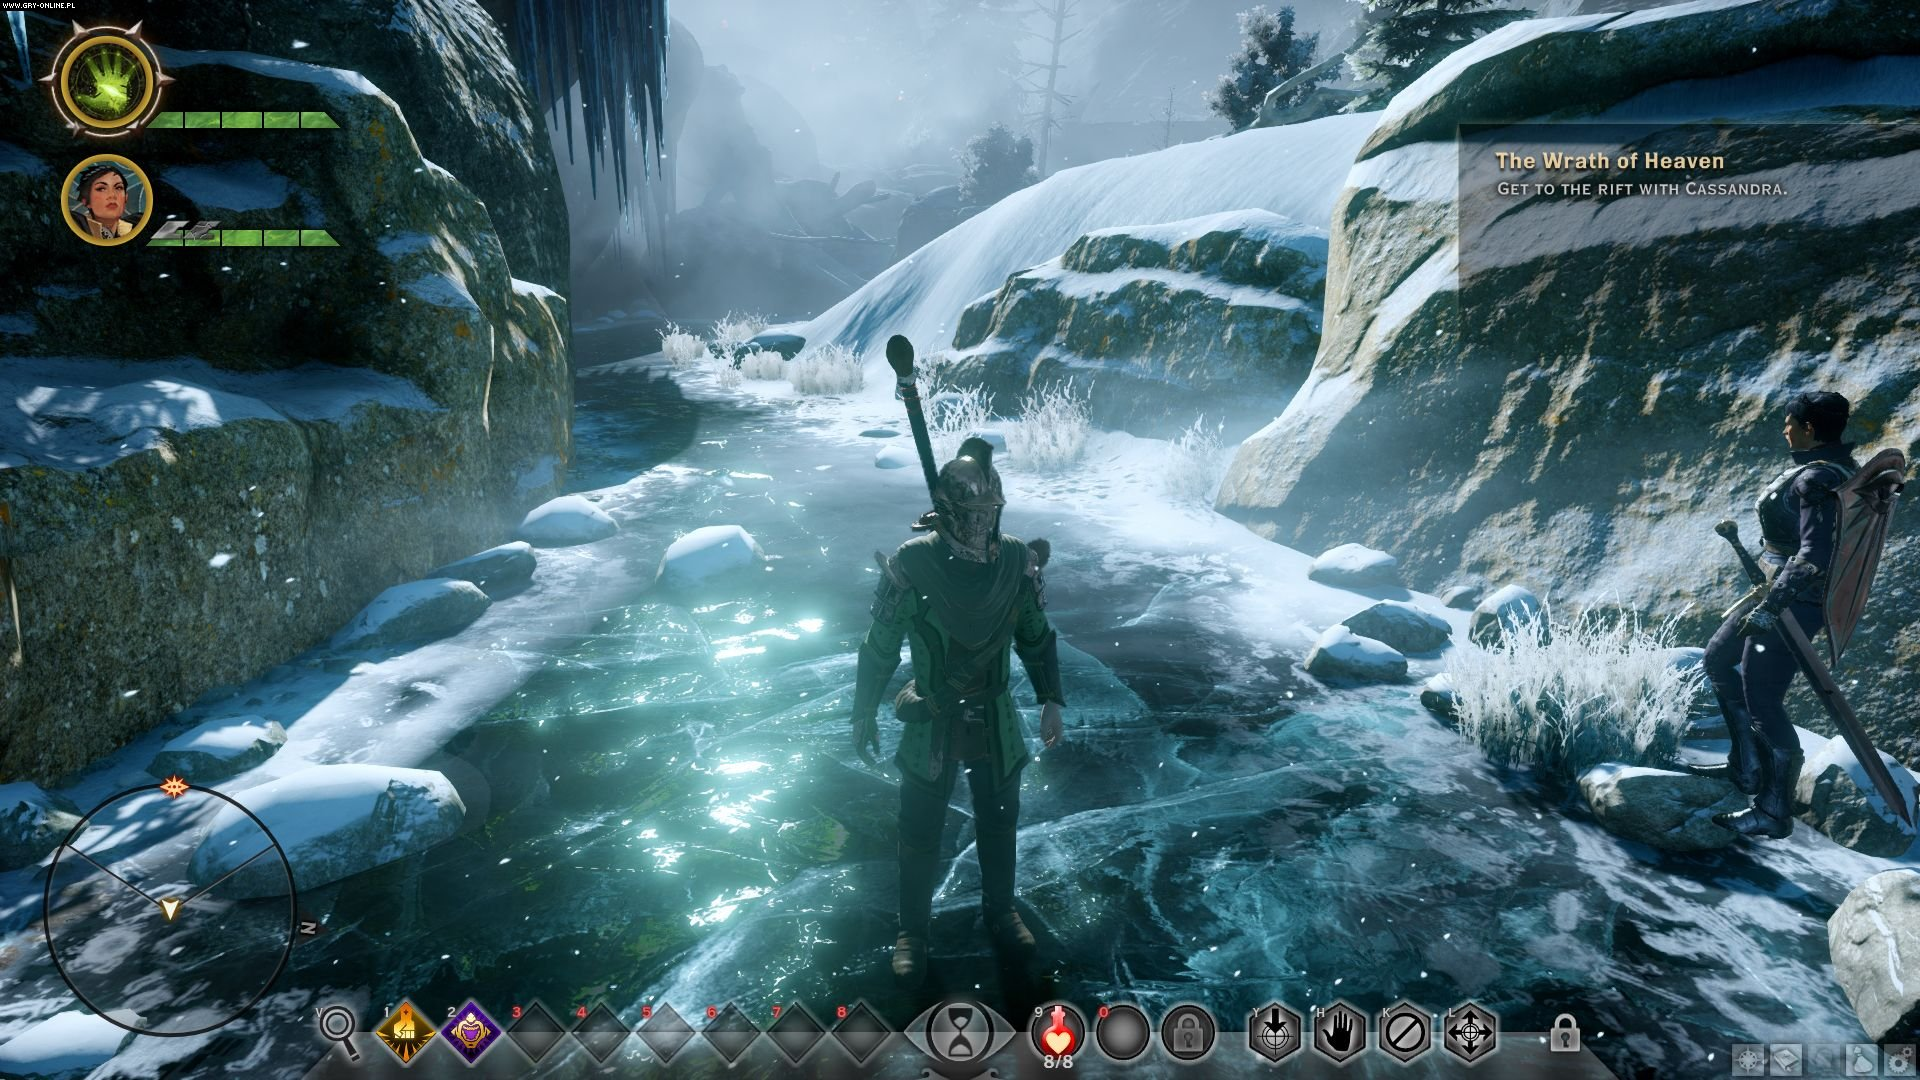 Dragon Age: Inquisition PC, X360, PS3 Games Image 2/225, BioWare Corporation, Electronic Arts Inc.